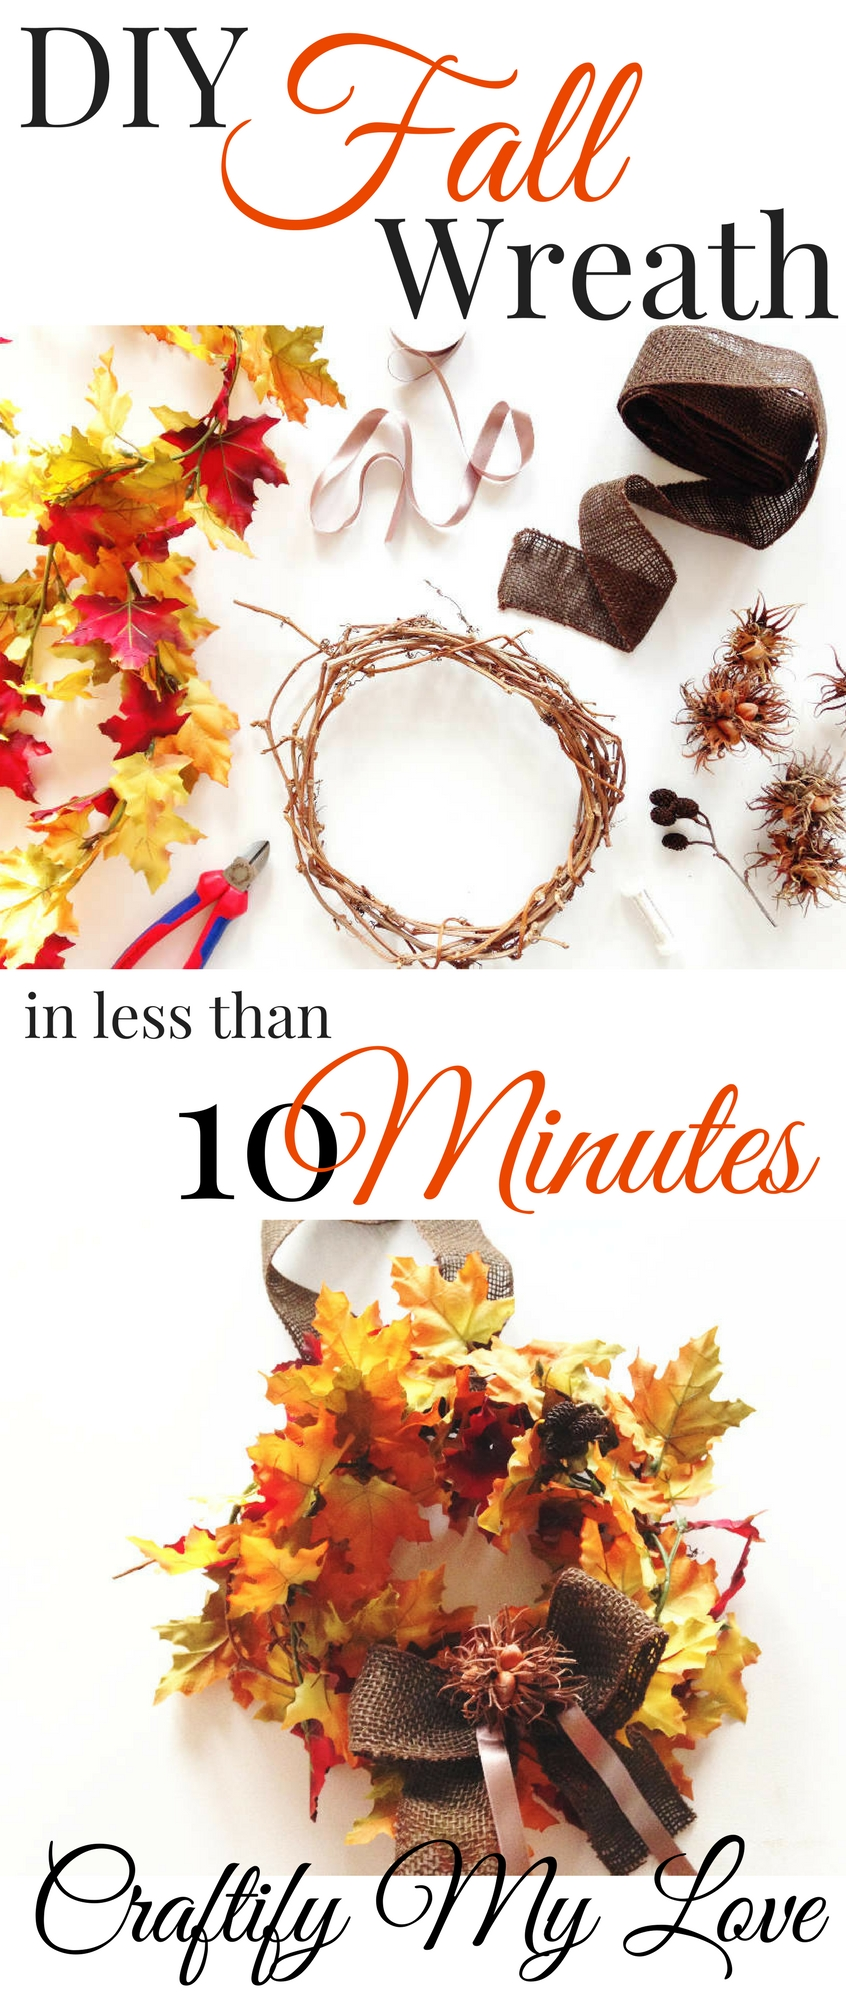 Make this fall leaves wreath with 4 supplies in less than 10 minutes